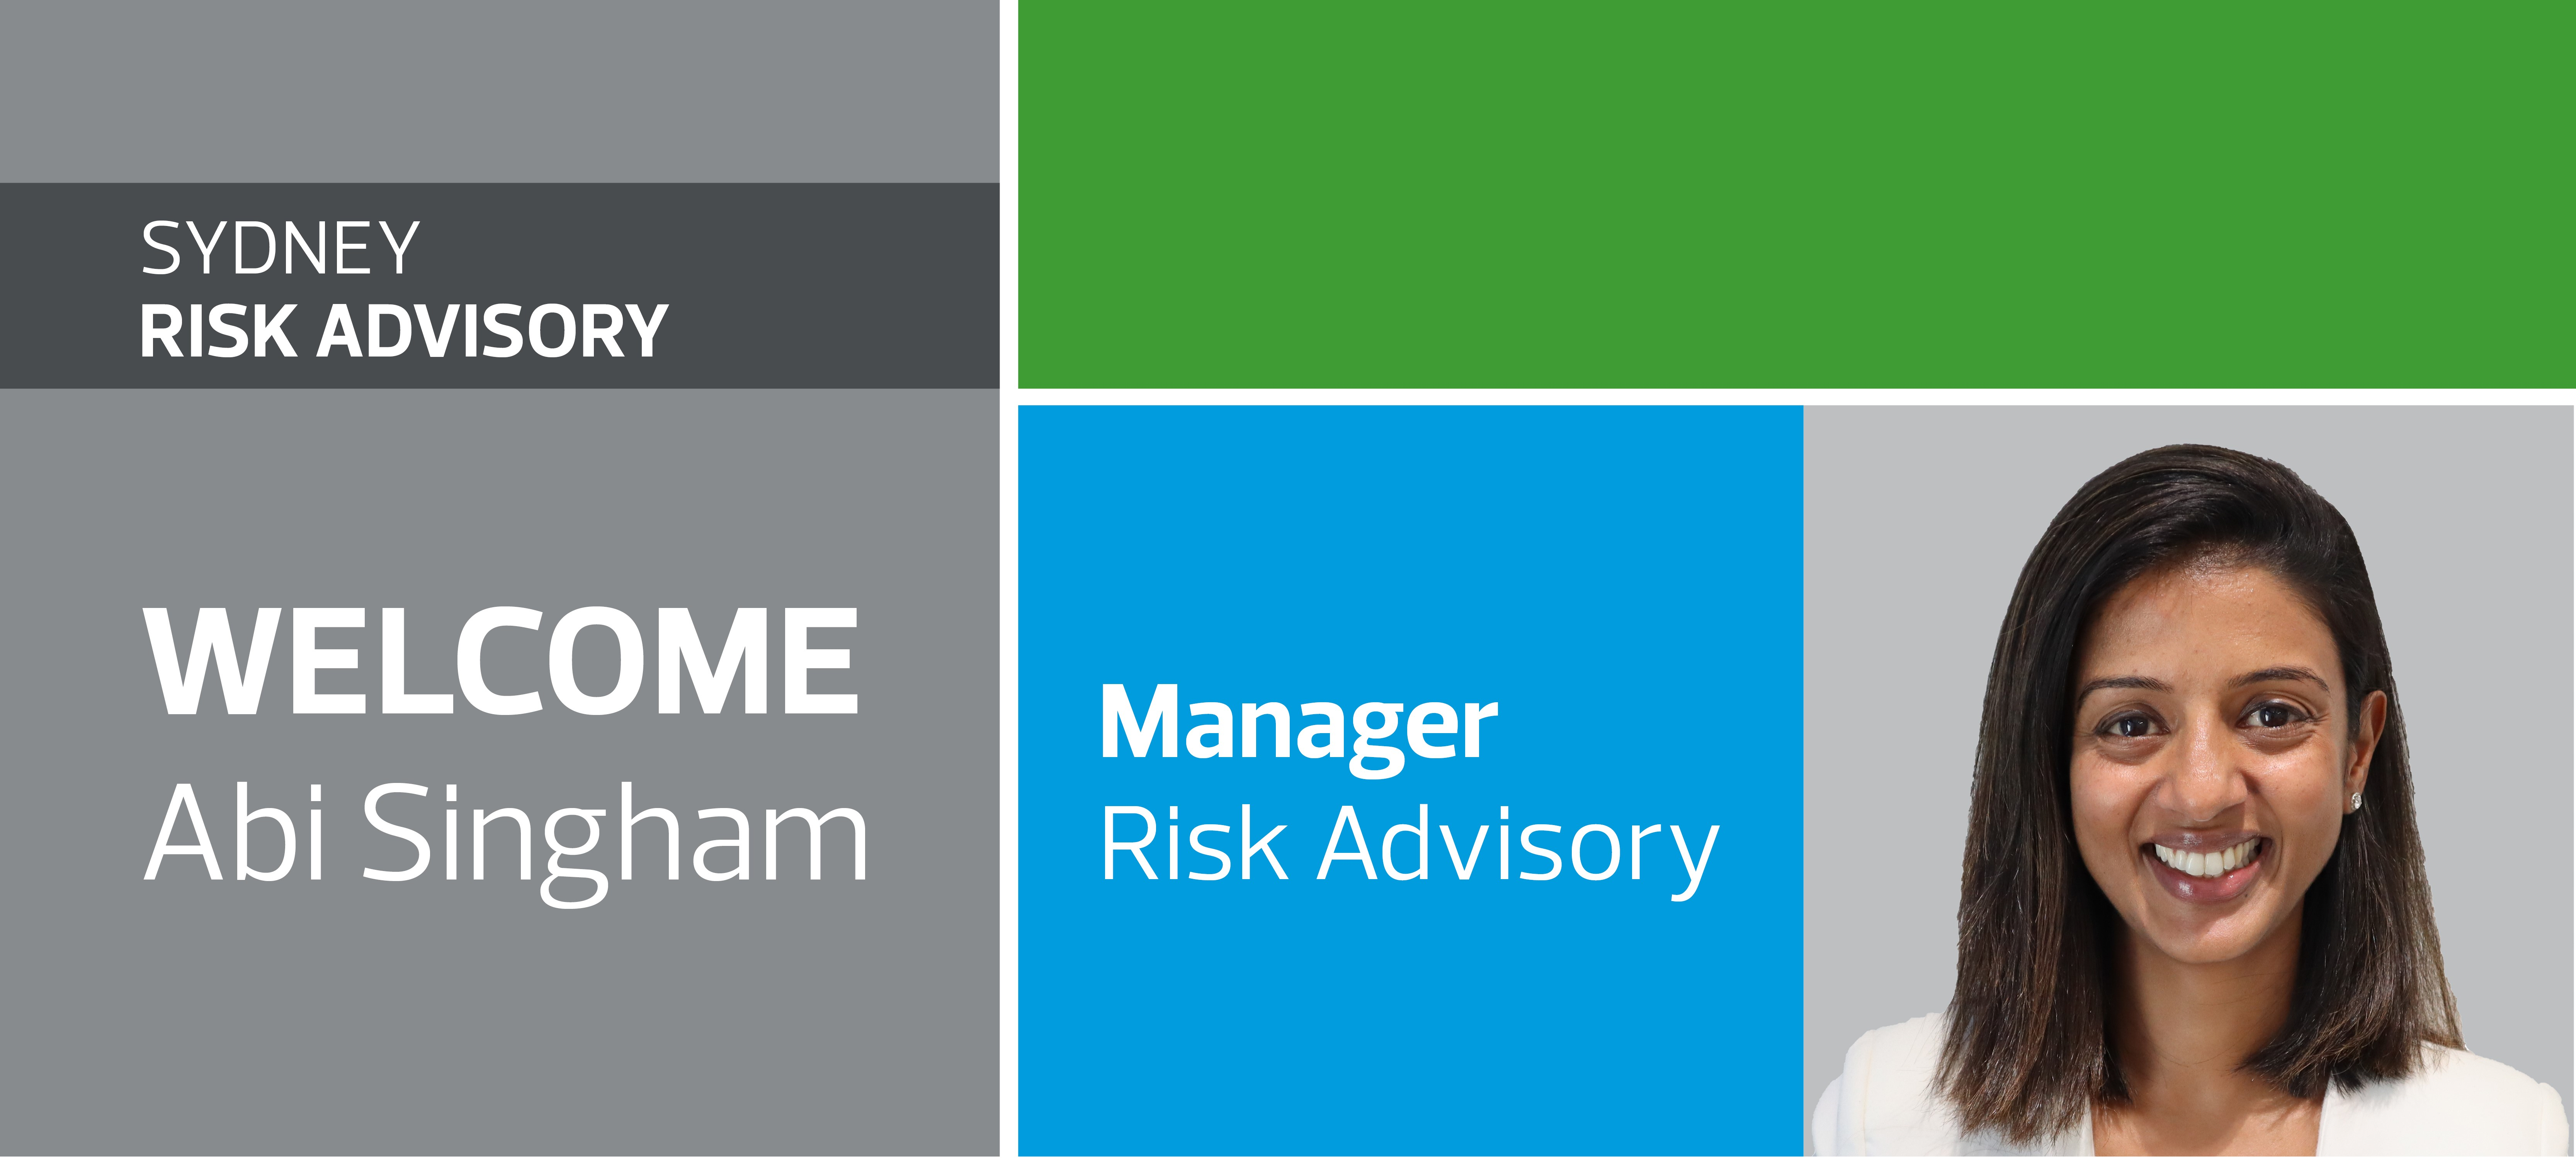 Welcome Abi Singham to the Risk Advisory Team